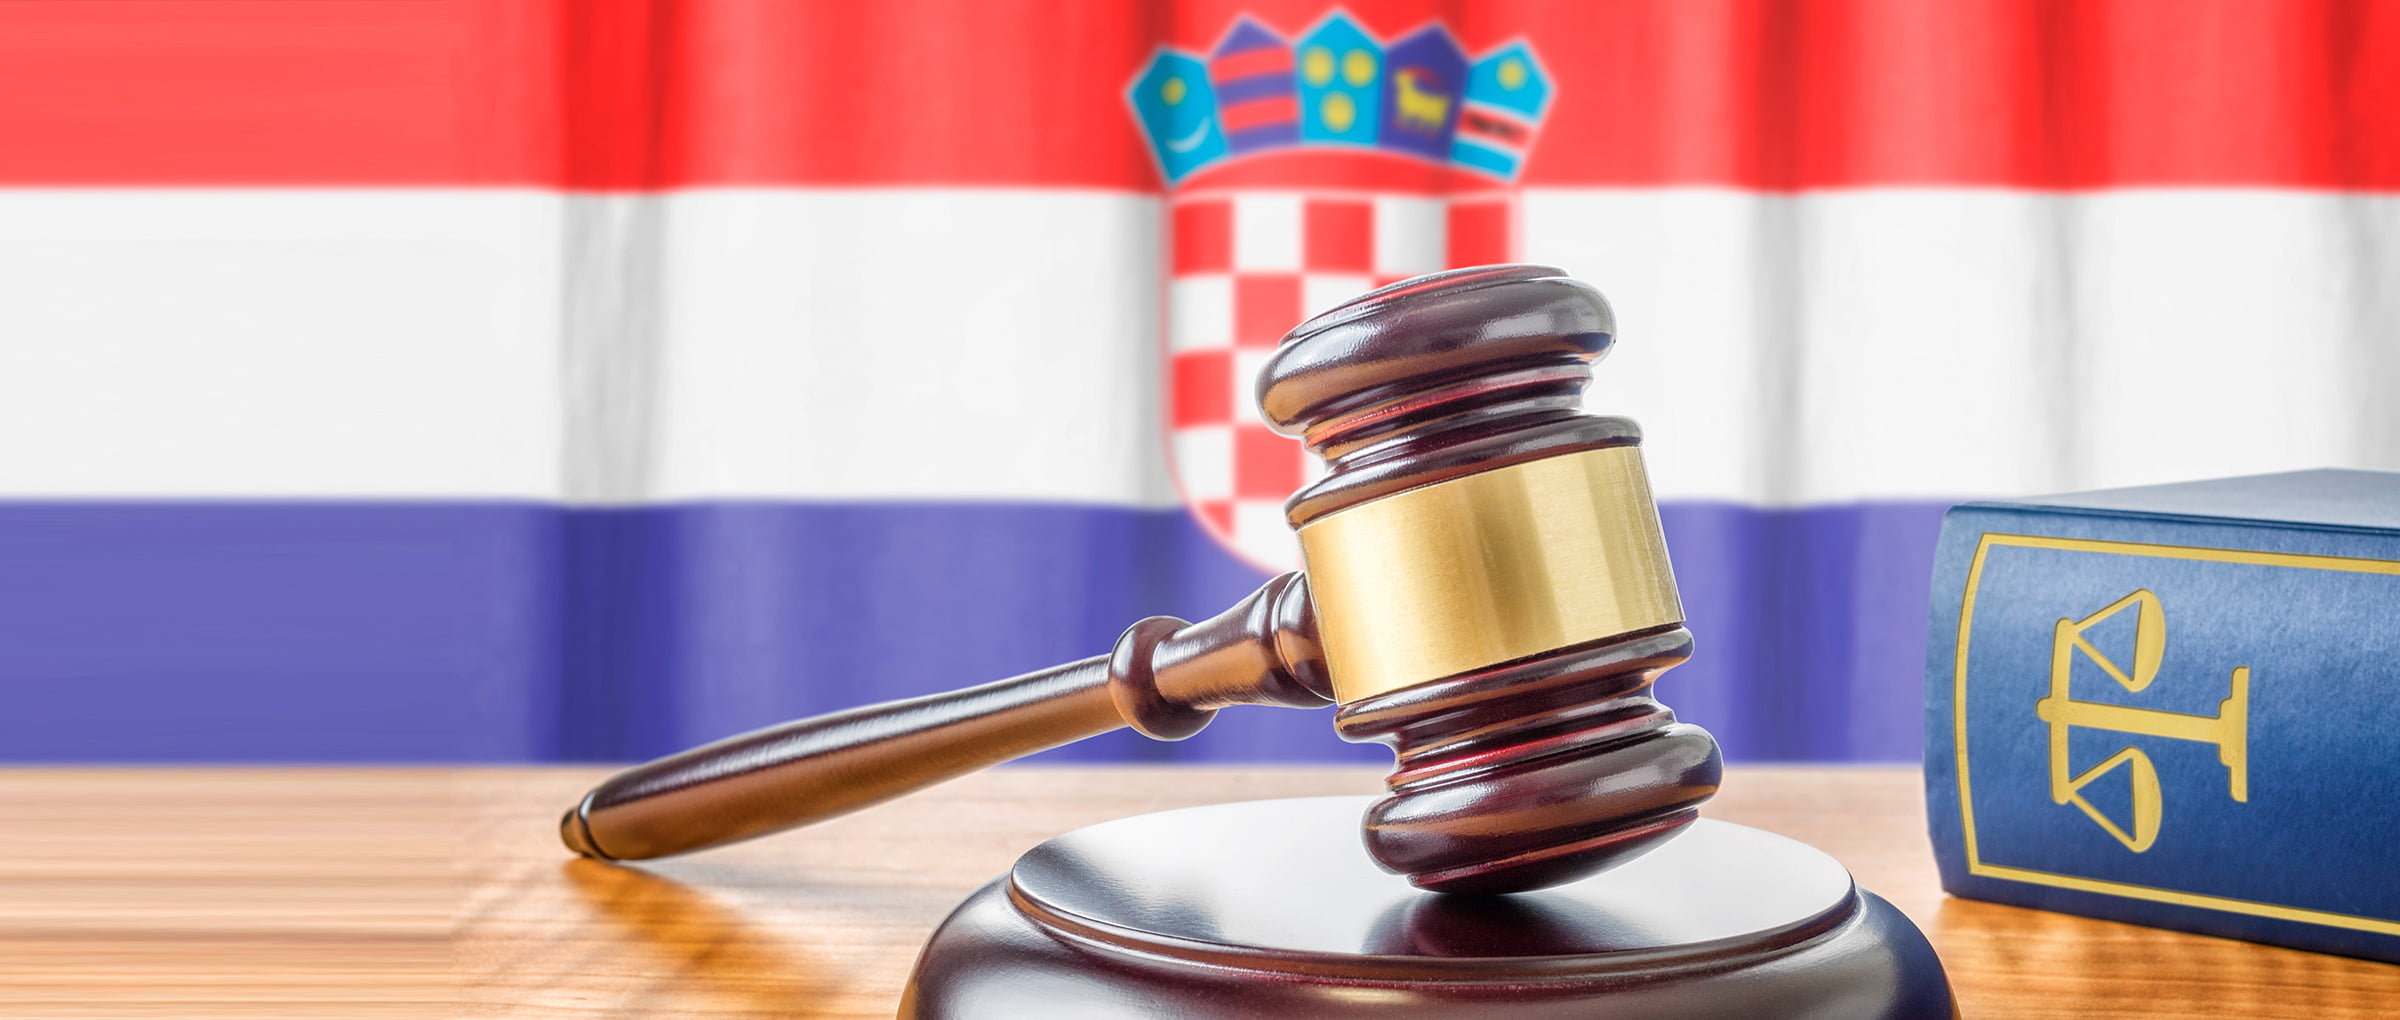 Regulations governing egg and sperm donation in Croatia